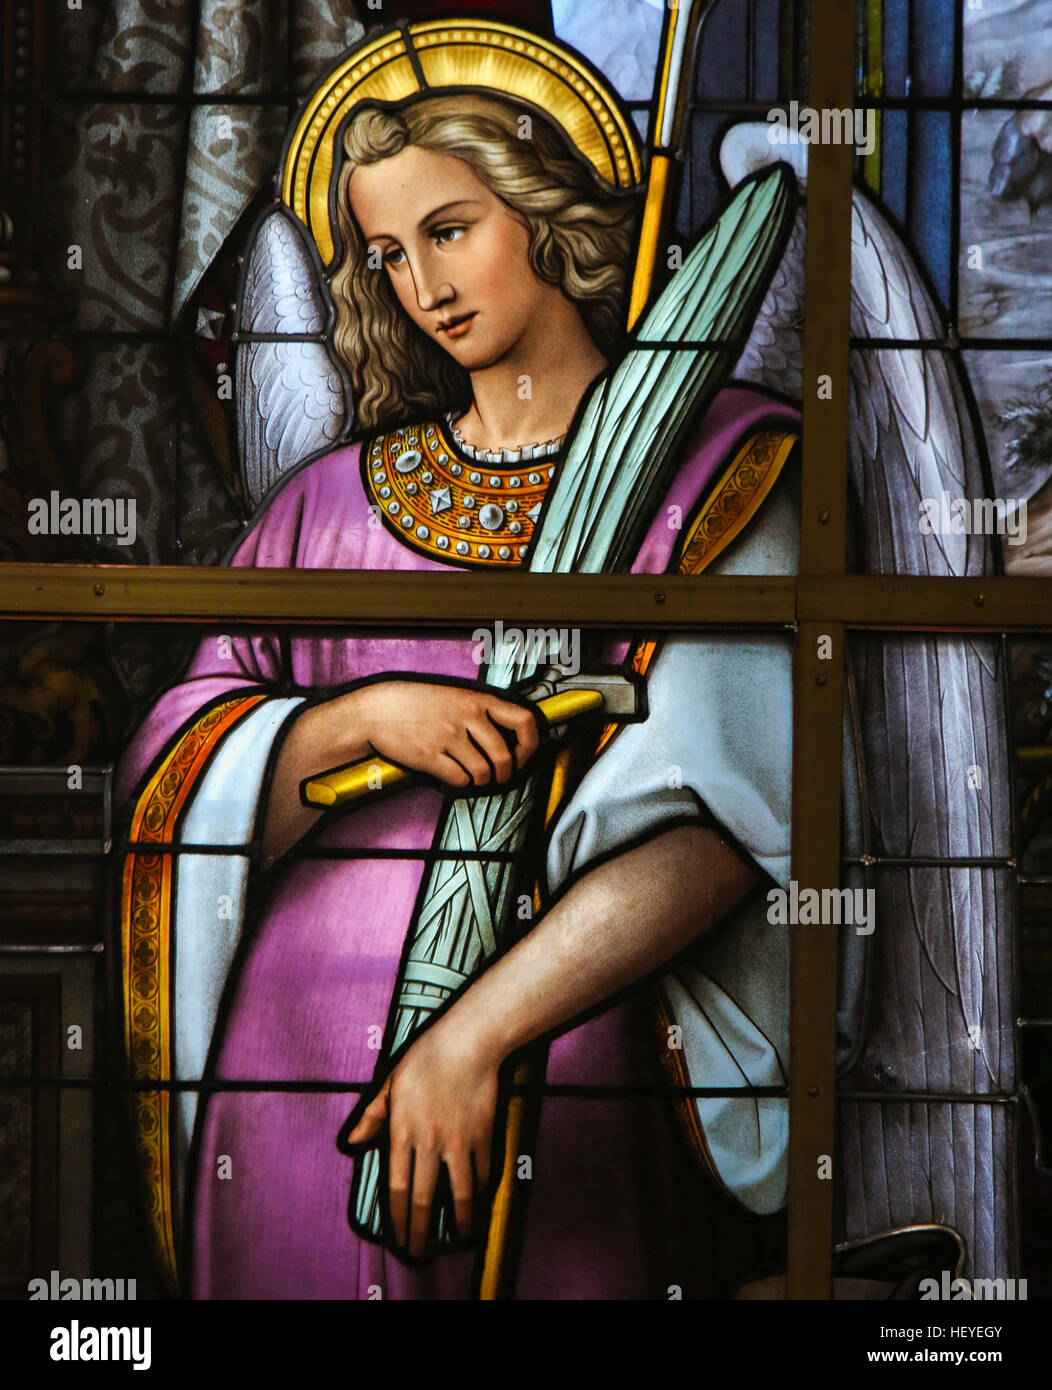 Stained Glass in Saint Nicholas Church, Ghent, Belgium, depicting an Allegory on the Suffering of Jesus, an Angel - Stock Image